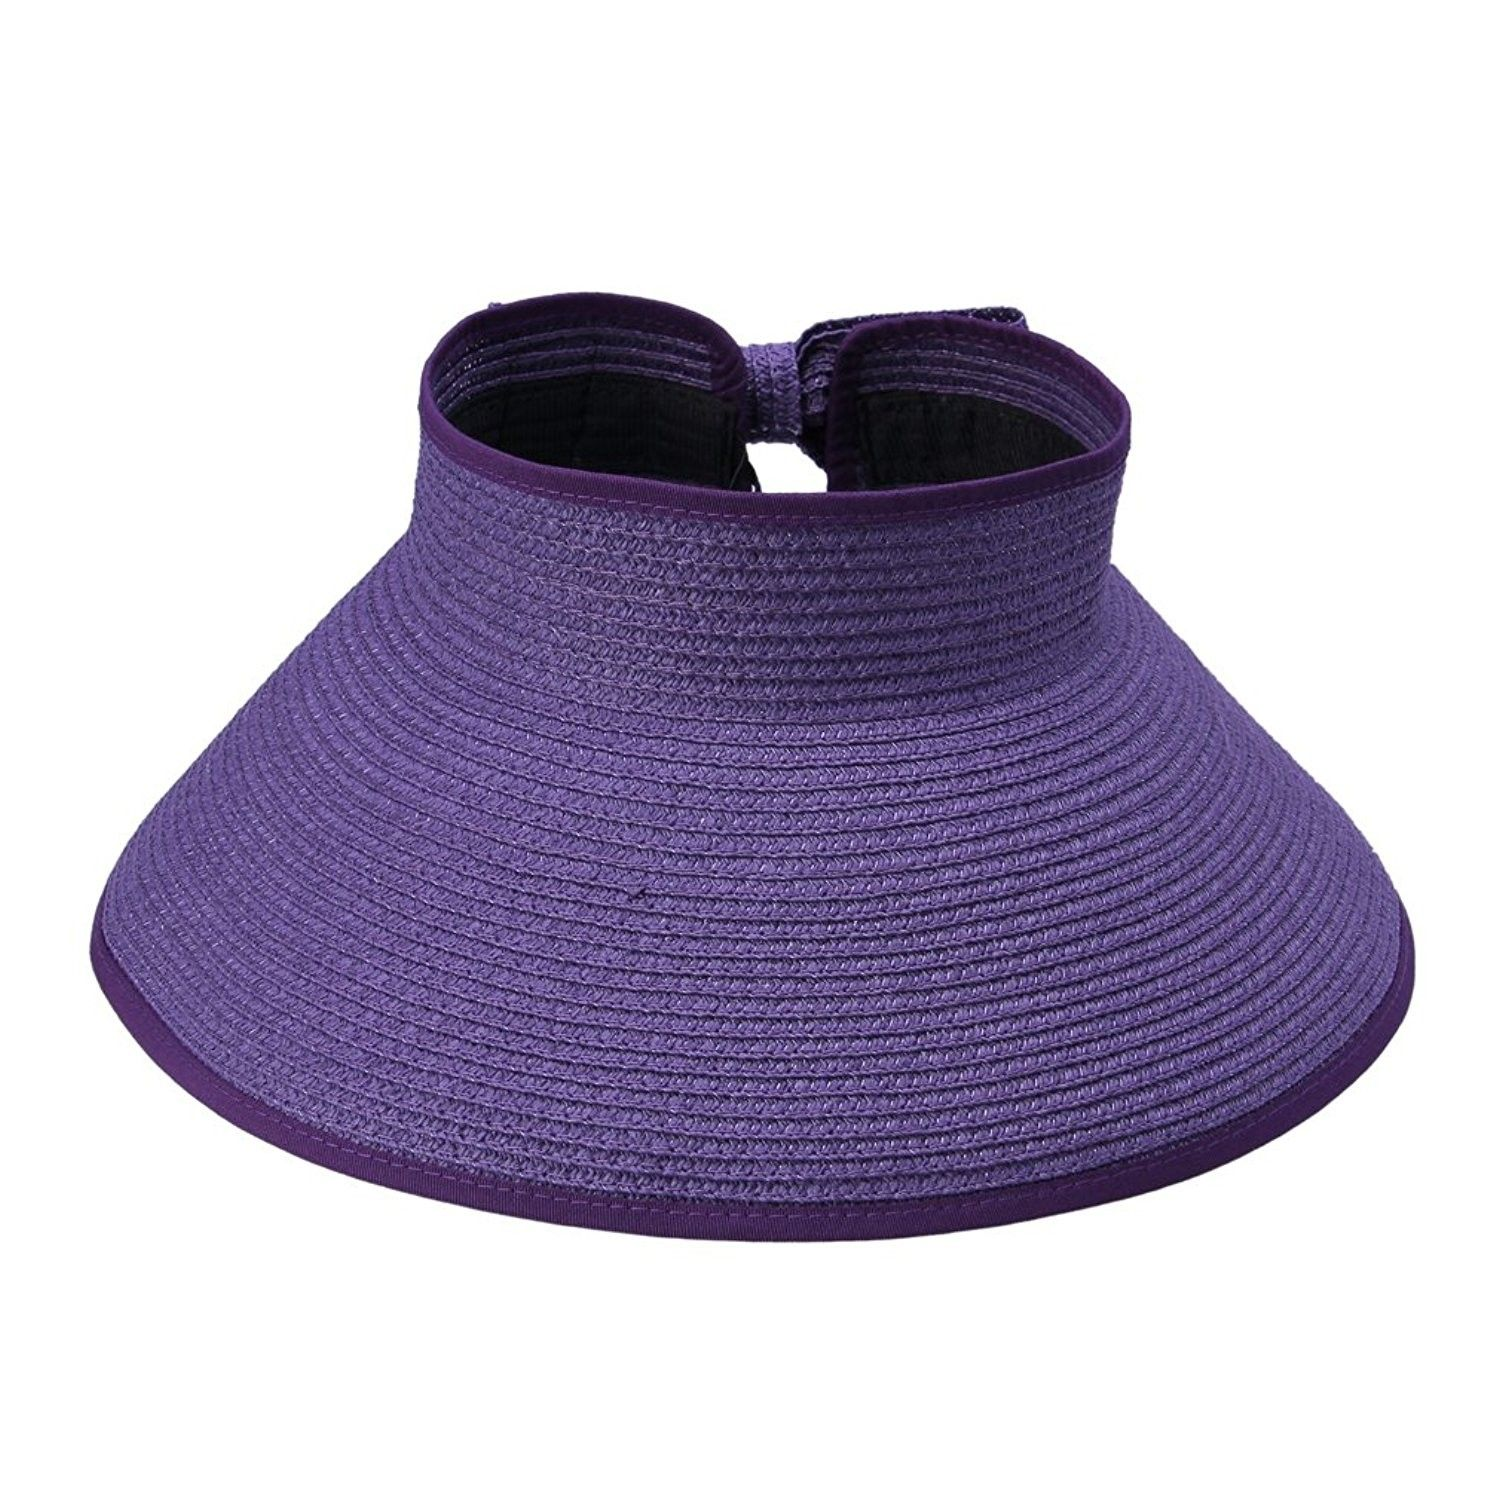 9634beb6ea6 Womens Ladies Straw Hat Wide Brim Roll-up Sun Visor Purple ...